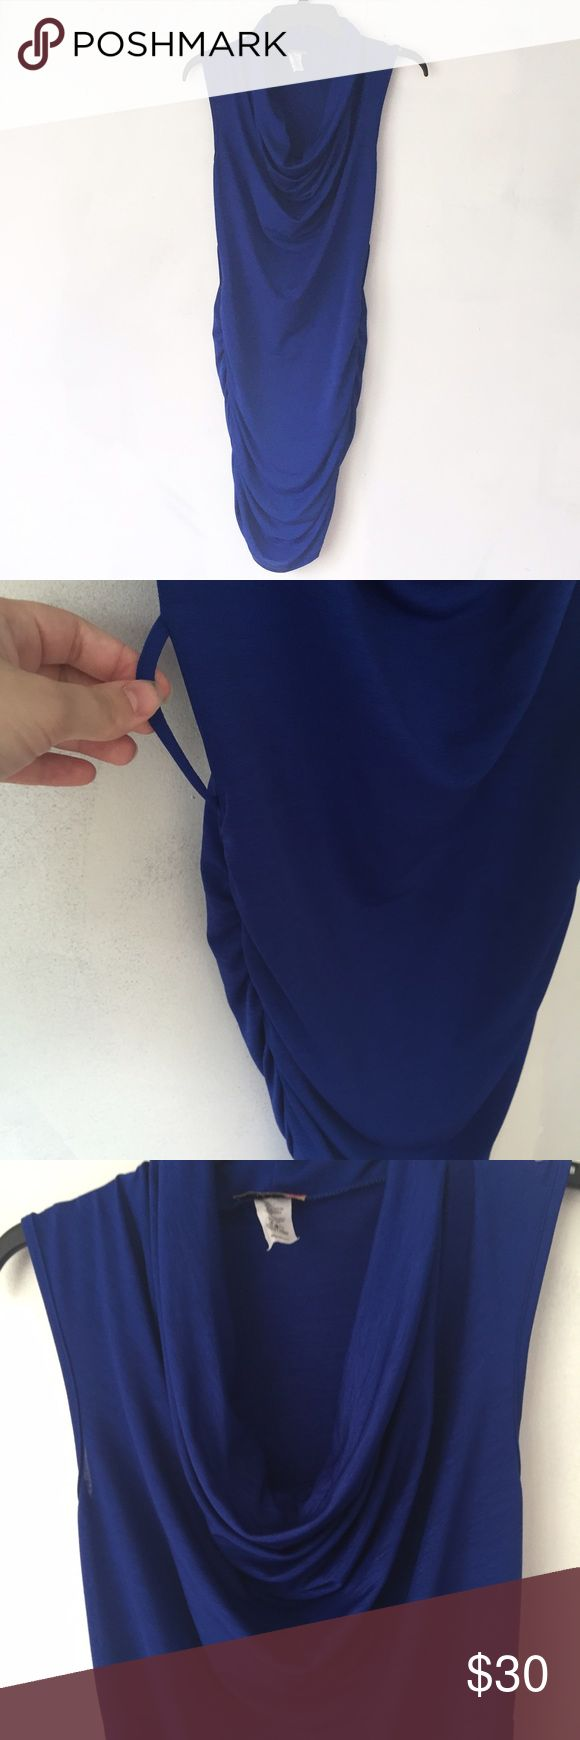 Body Central Fitted Dress Royal blue sleeveless dress. Can be worn with a belt. Ruched at sides. Draped neck. Worn once Body Central Dresses Midi